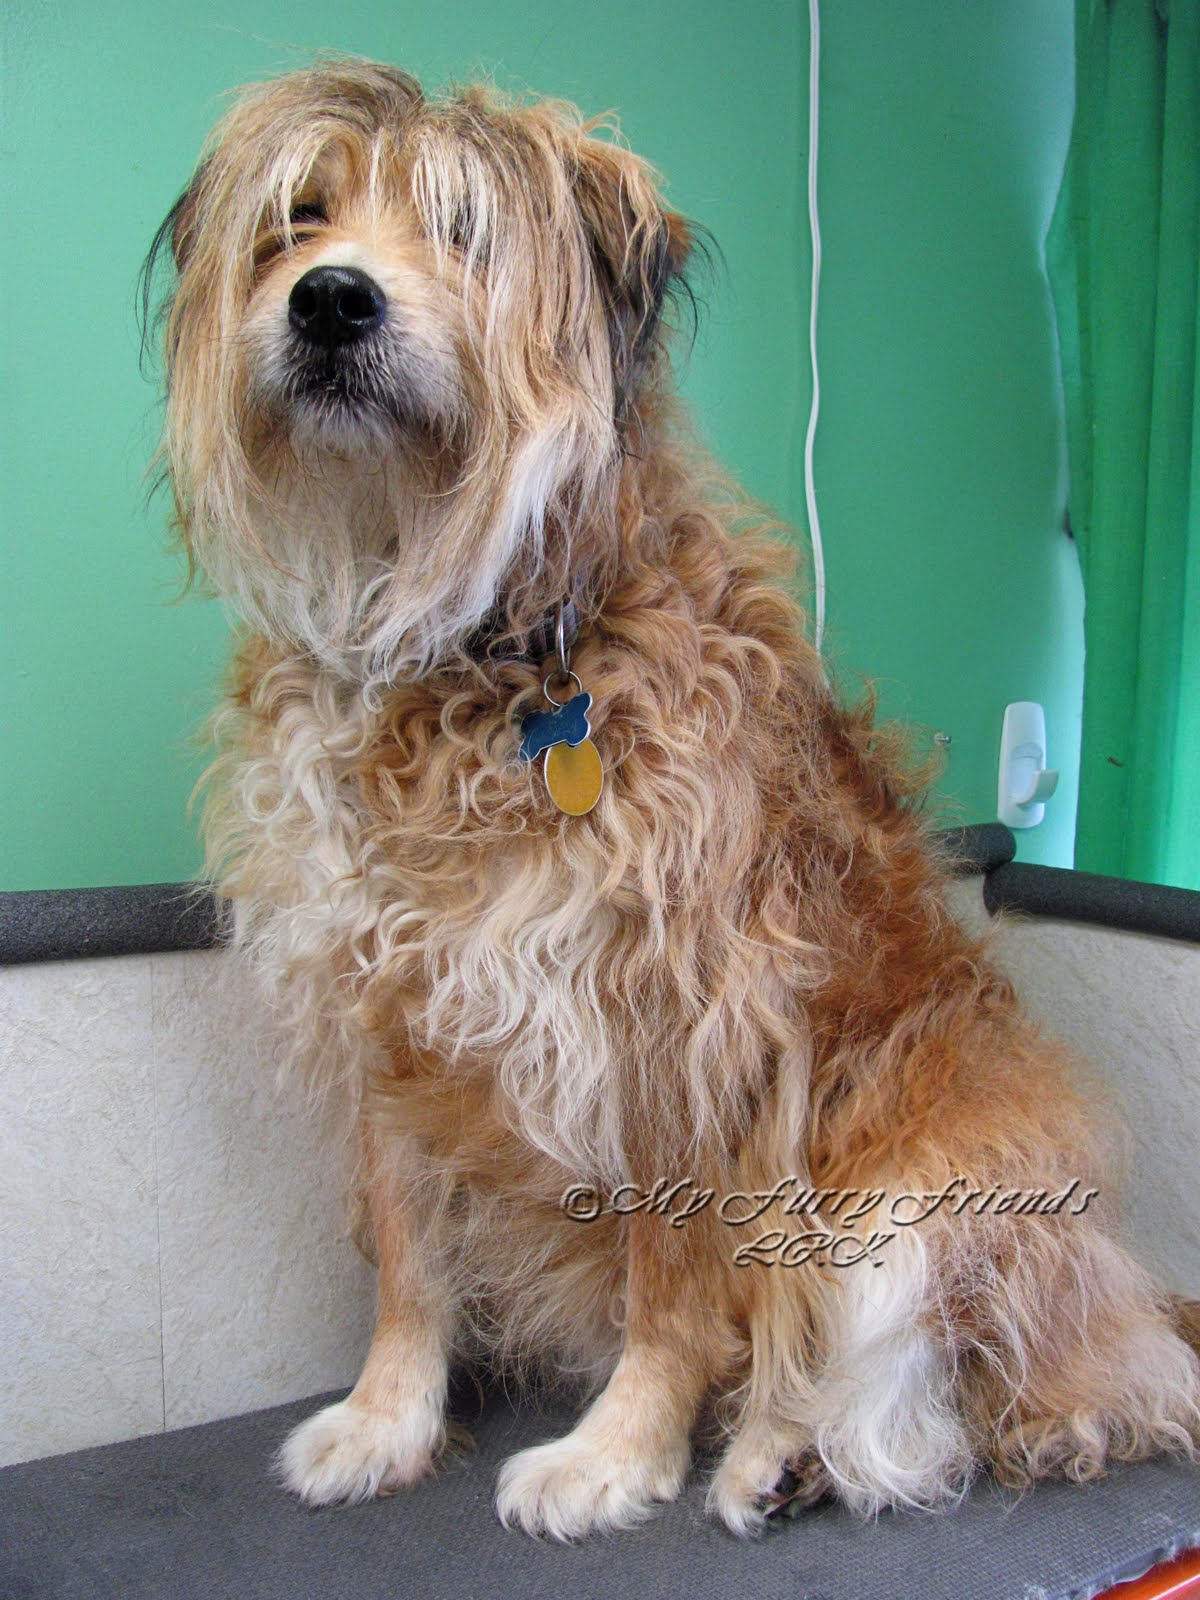 Terrier Haircuts : terrier, haircuts, Grooming:, Good,, Furry:, Terrier